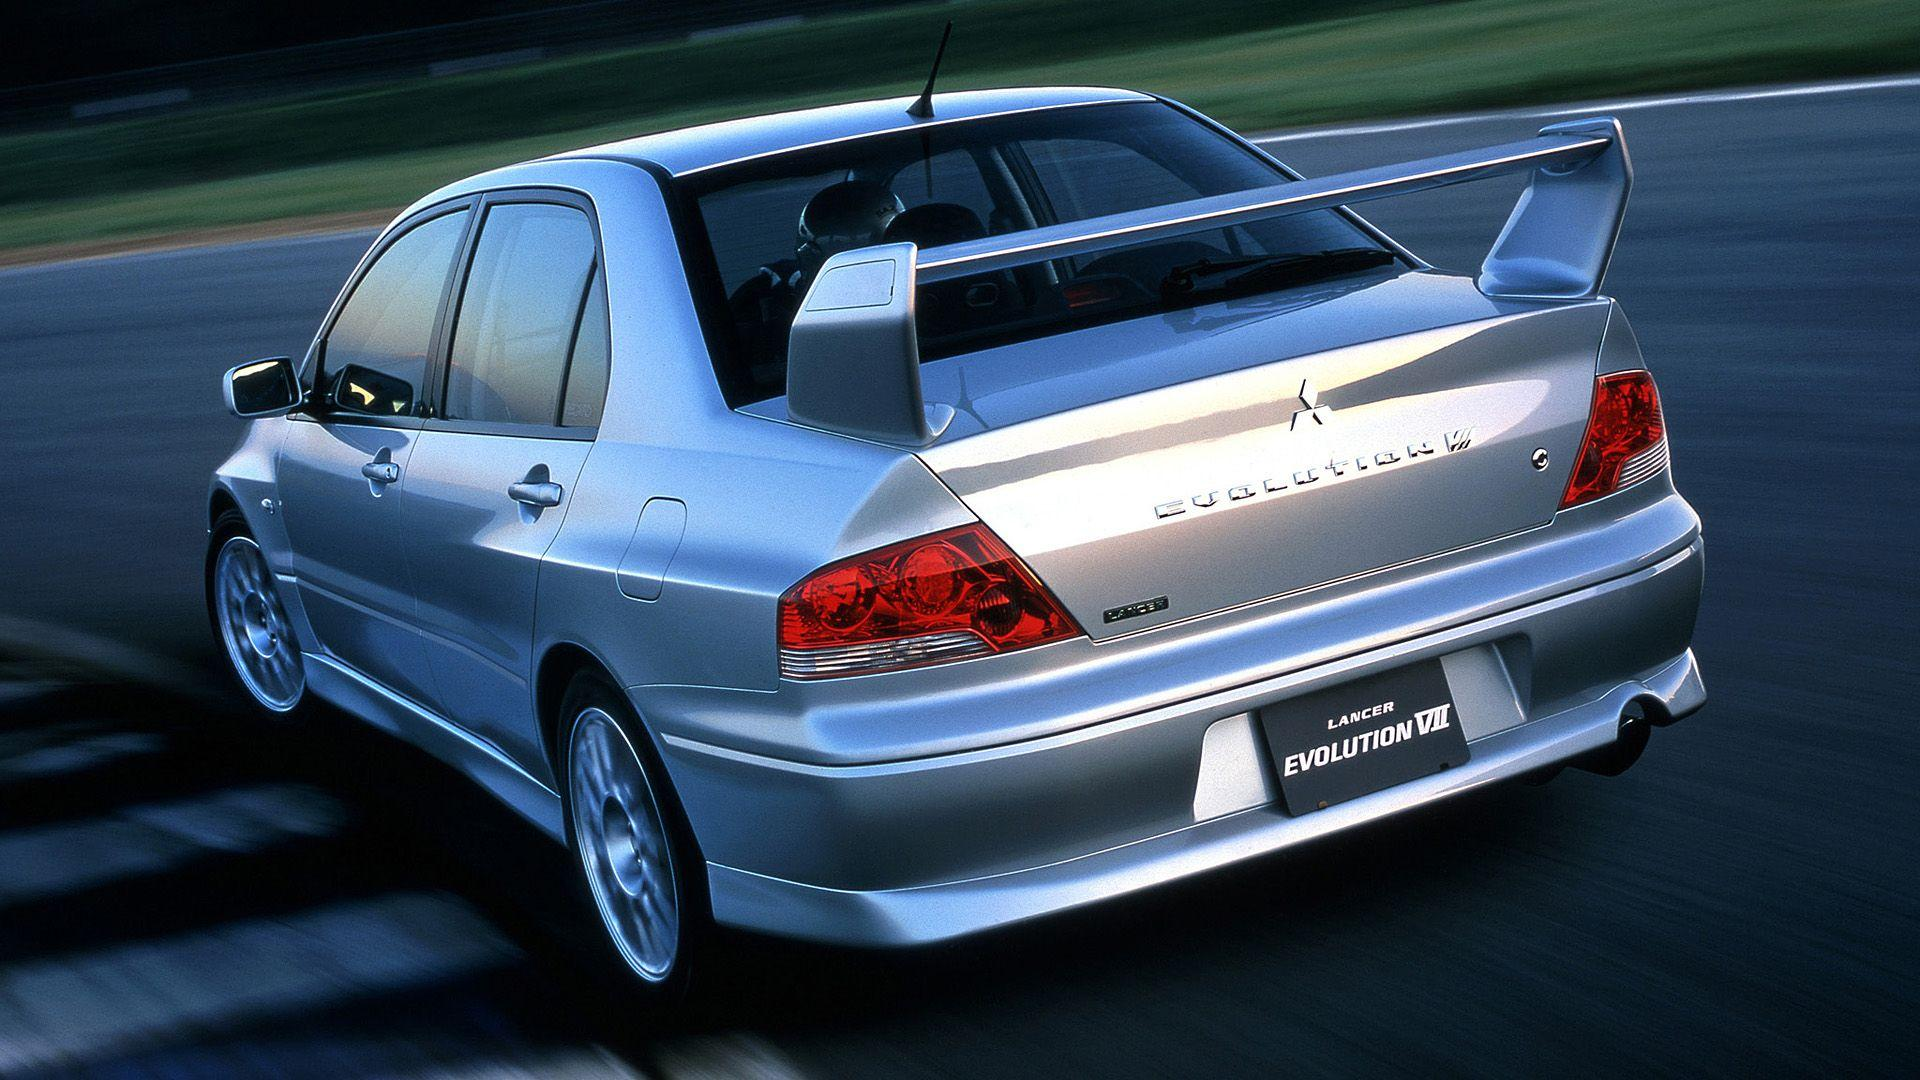 2001 Mitsubishi Lancer GSR Evolution VII Wallpapers & HD Image